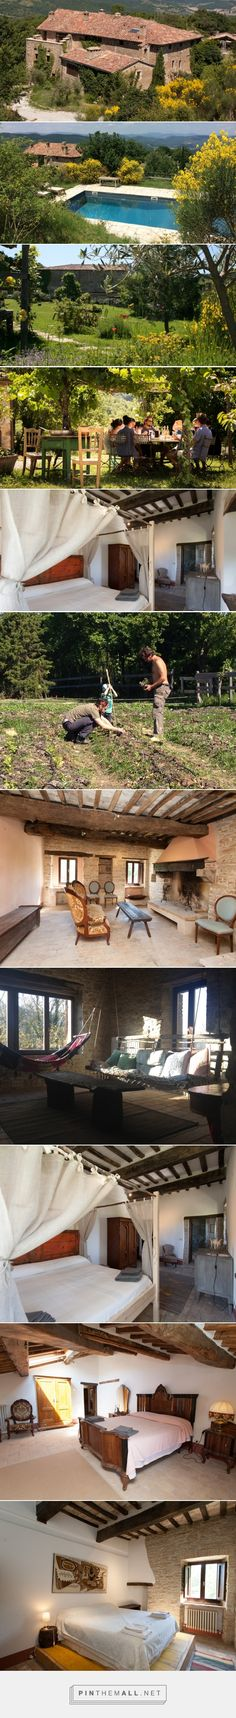 An organic, sustainable farm in Umbria. Available for venue hire for workshops and yoga retreats and for vacation apartment rentals. Inclusive Holidays, All Inclusive, Rental Apartments, Vacation Apartments, Yoga Retreat, Italy Travel, Sustainability, Alternative, Community